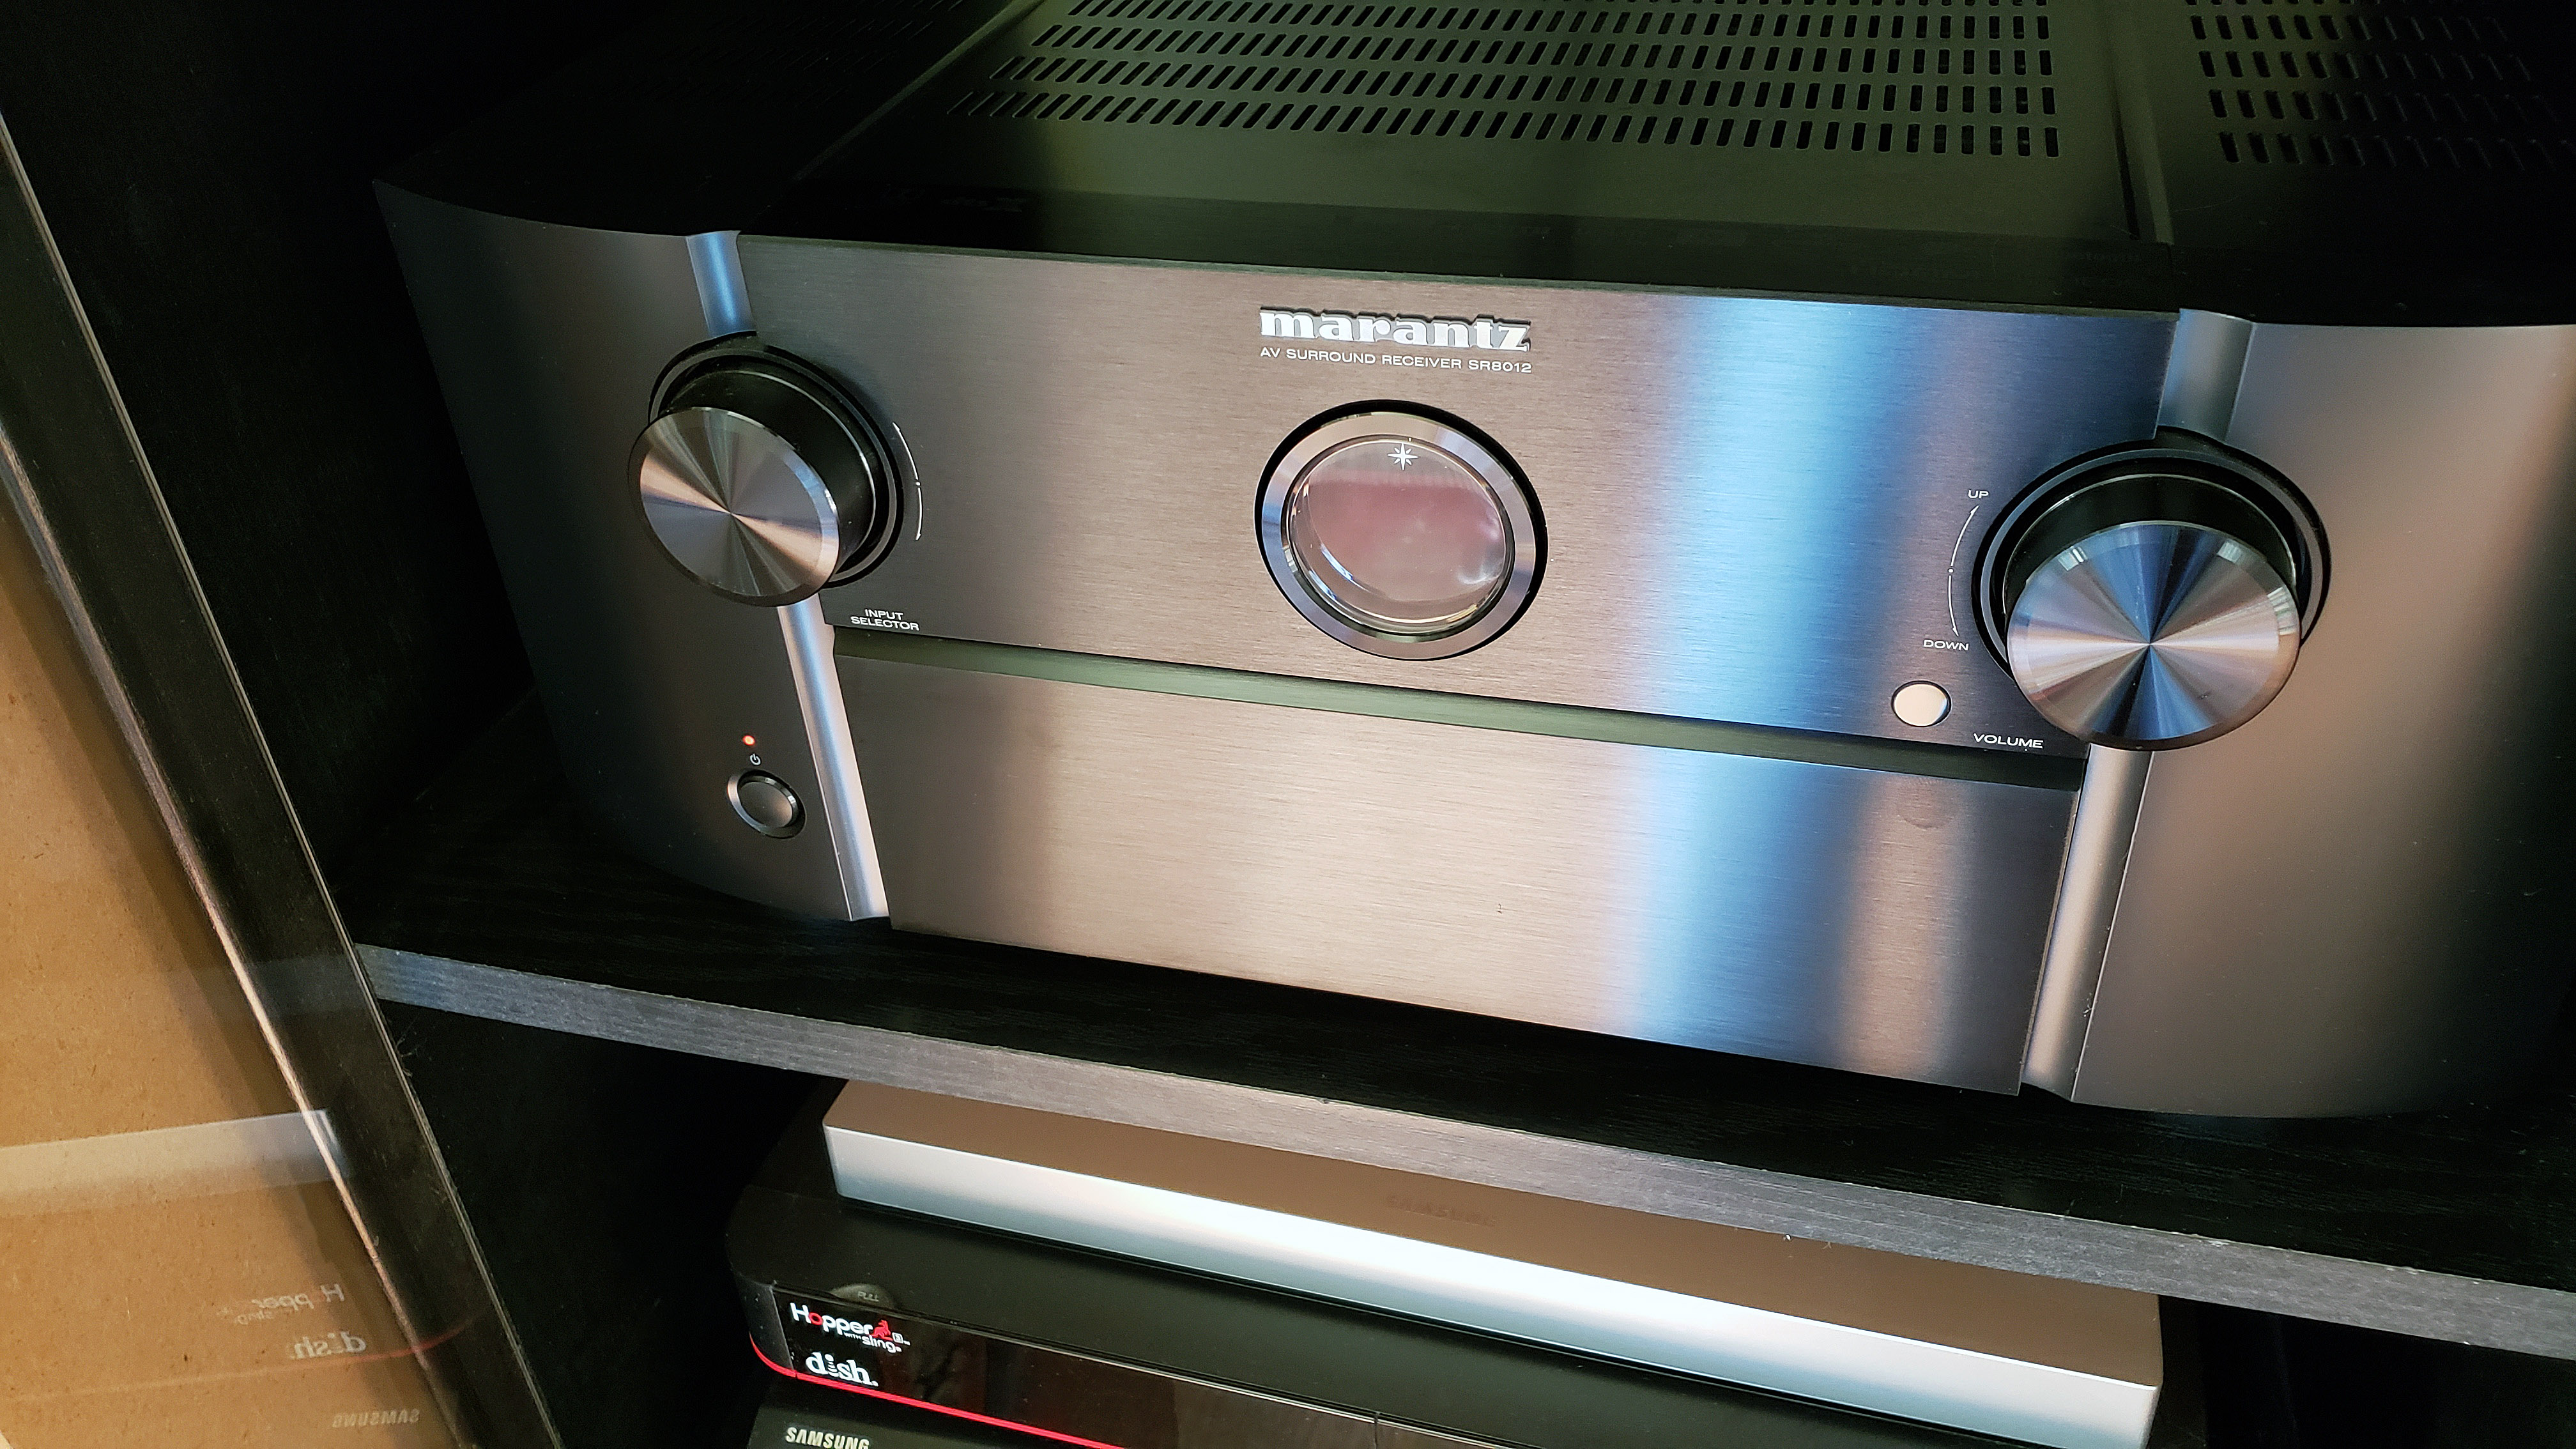 Marantz SR-8012 11 Channel Receiver Review